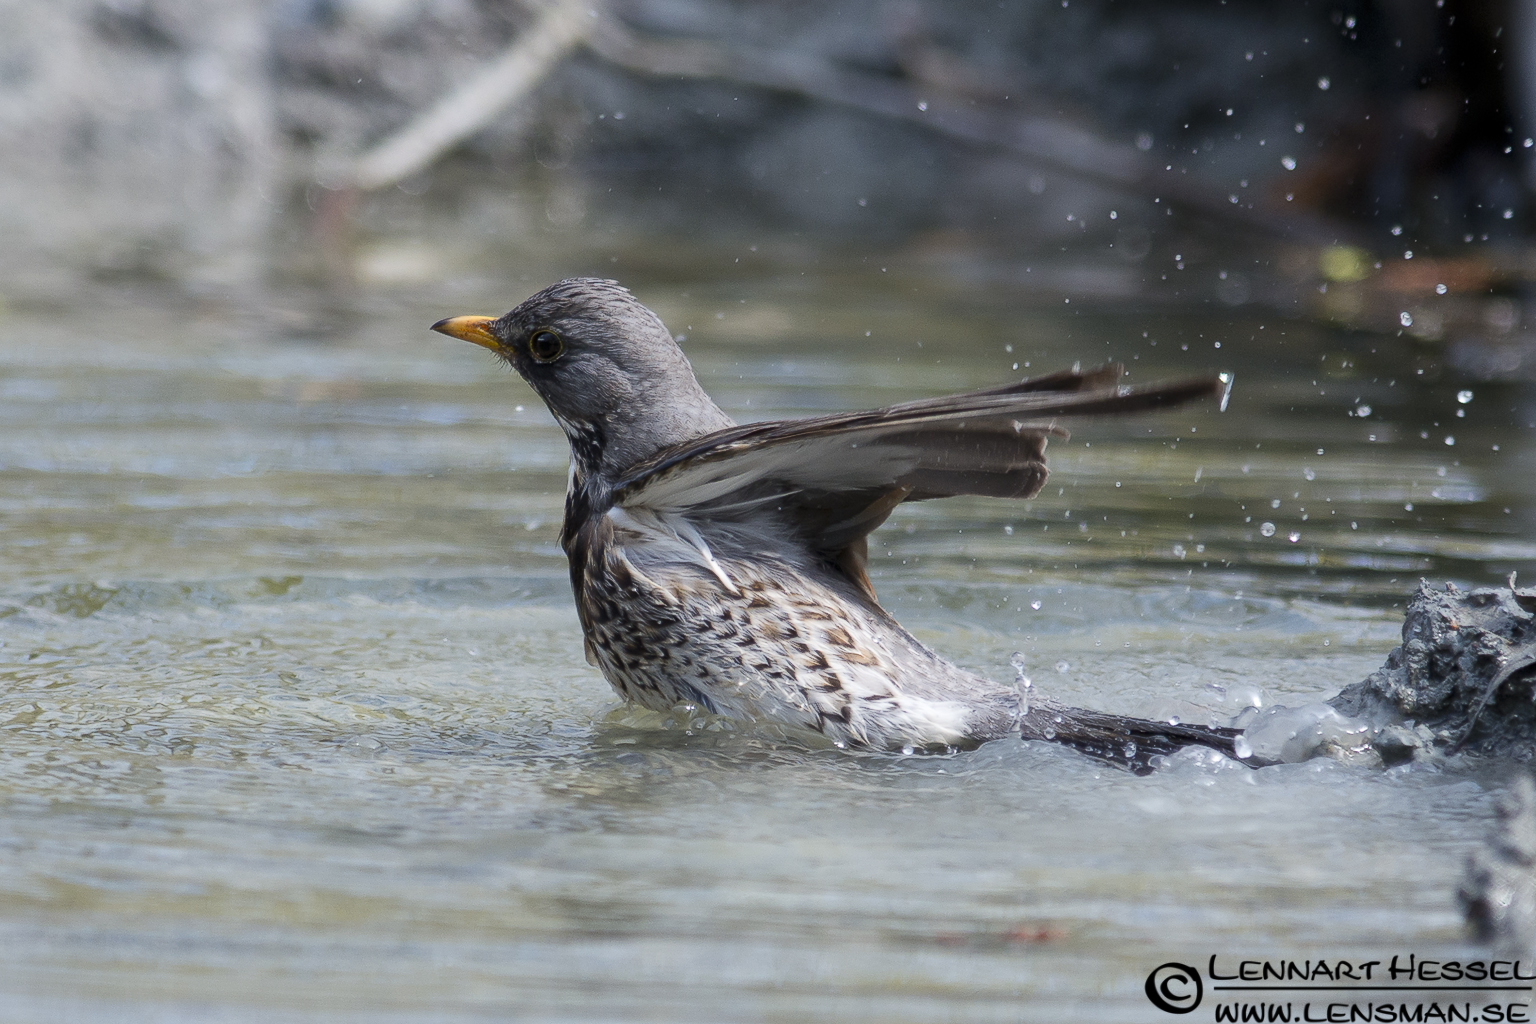 Fieldfare in Slottskogen, Gothenburg practice